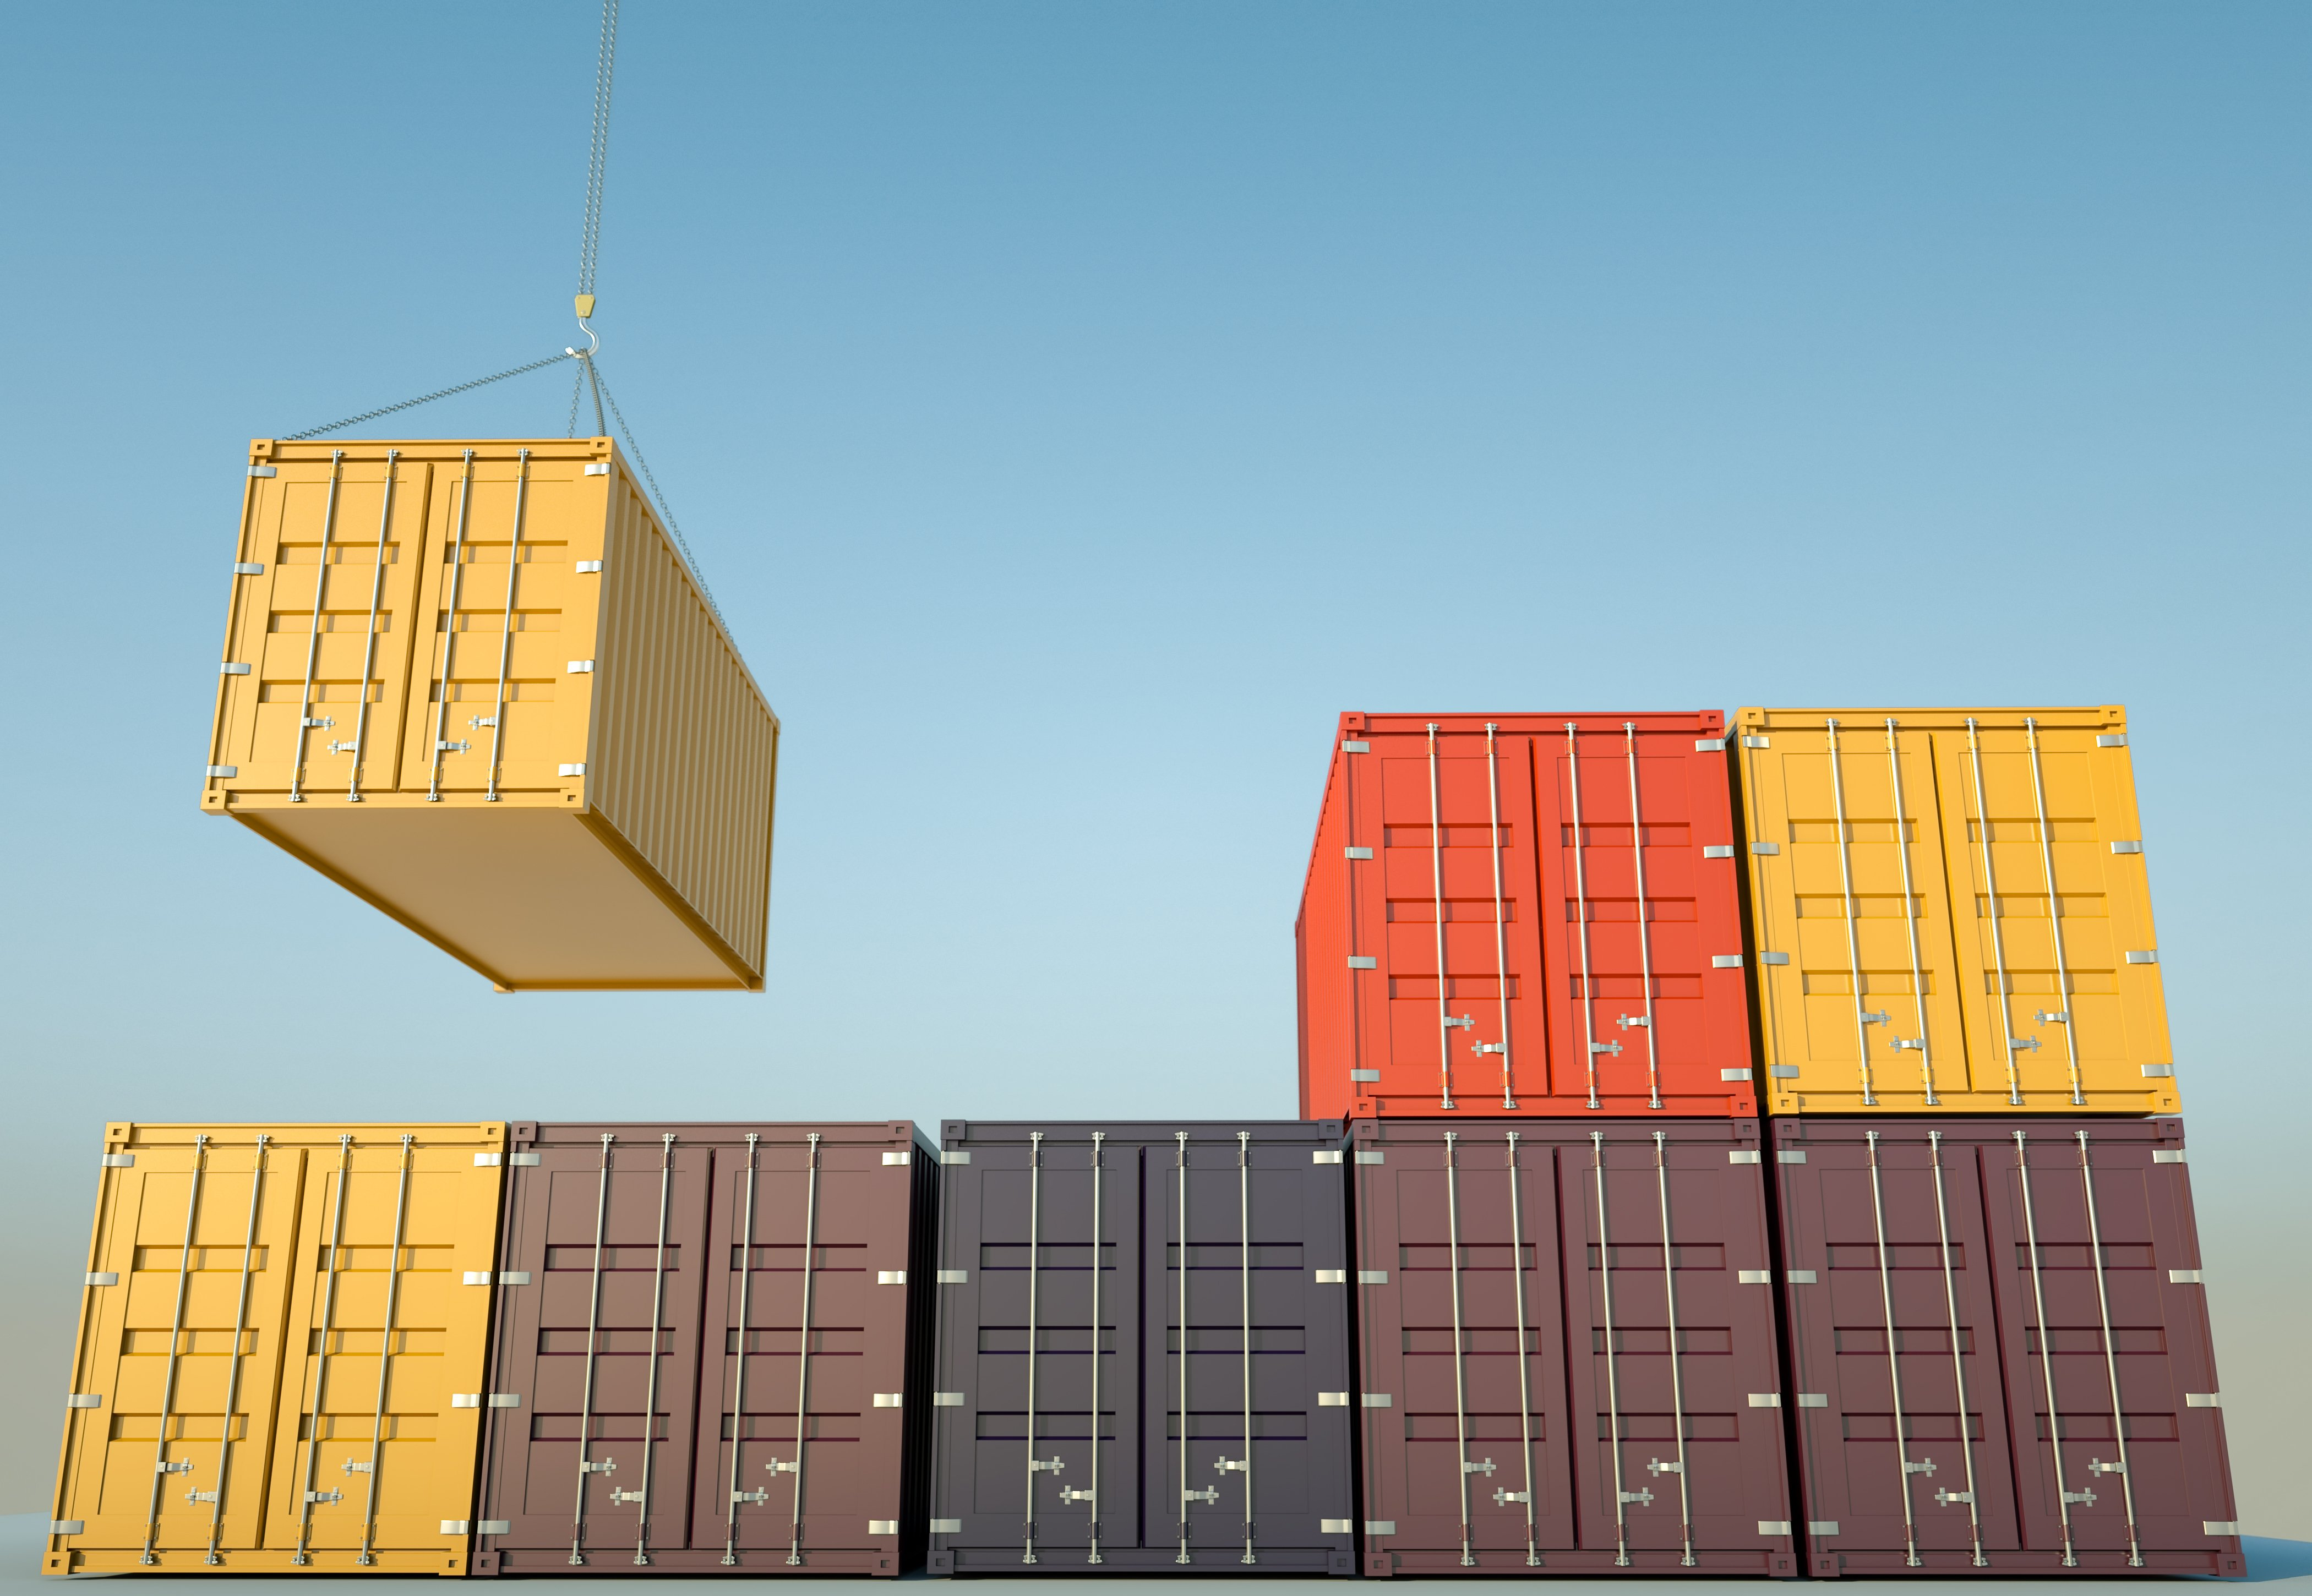 DropBox Inc, ISO Shipping container, Shipping container, shipping container sizes, shipping container weight, how to stack shipping containers, stacking shipping containers, corner castings, crane, straddle carrier, twist locks